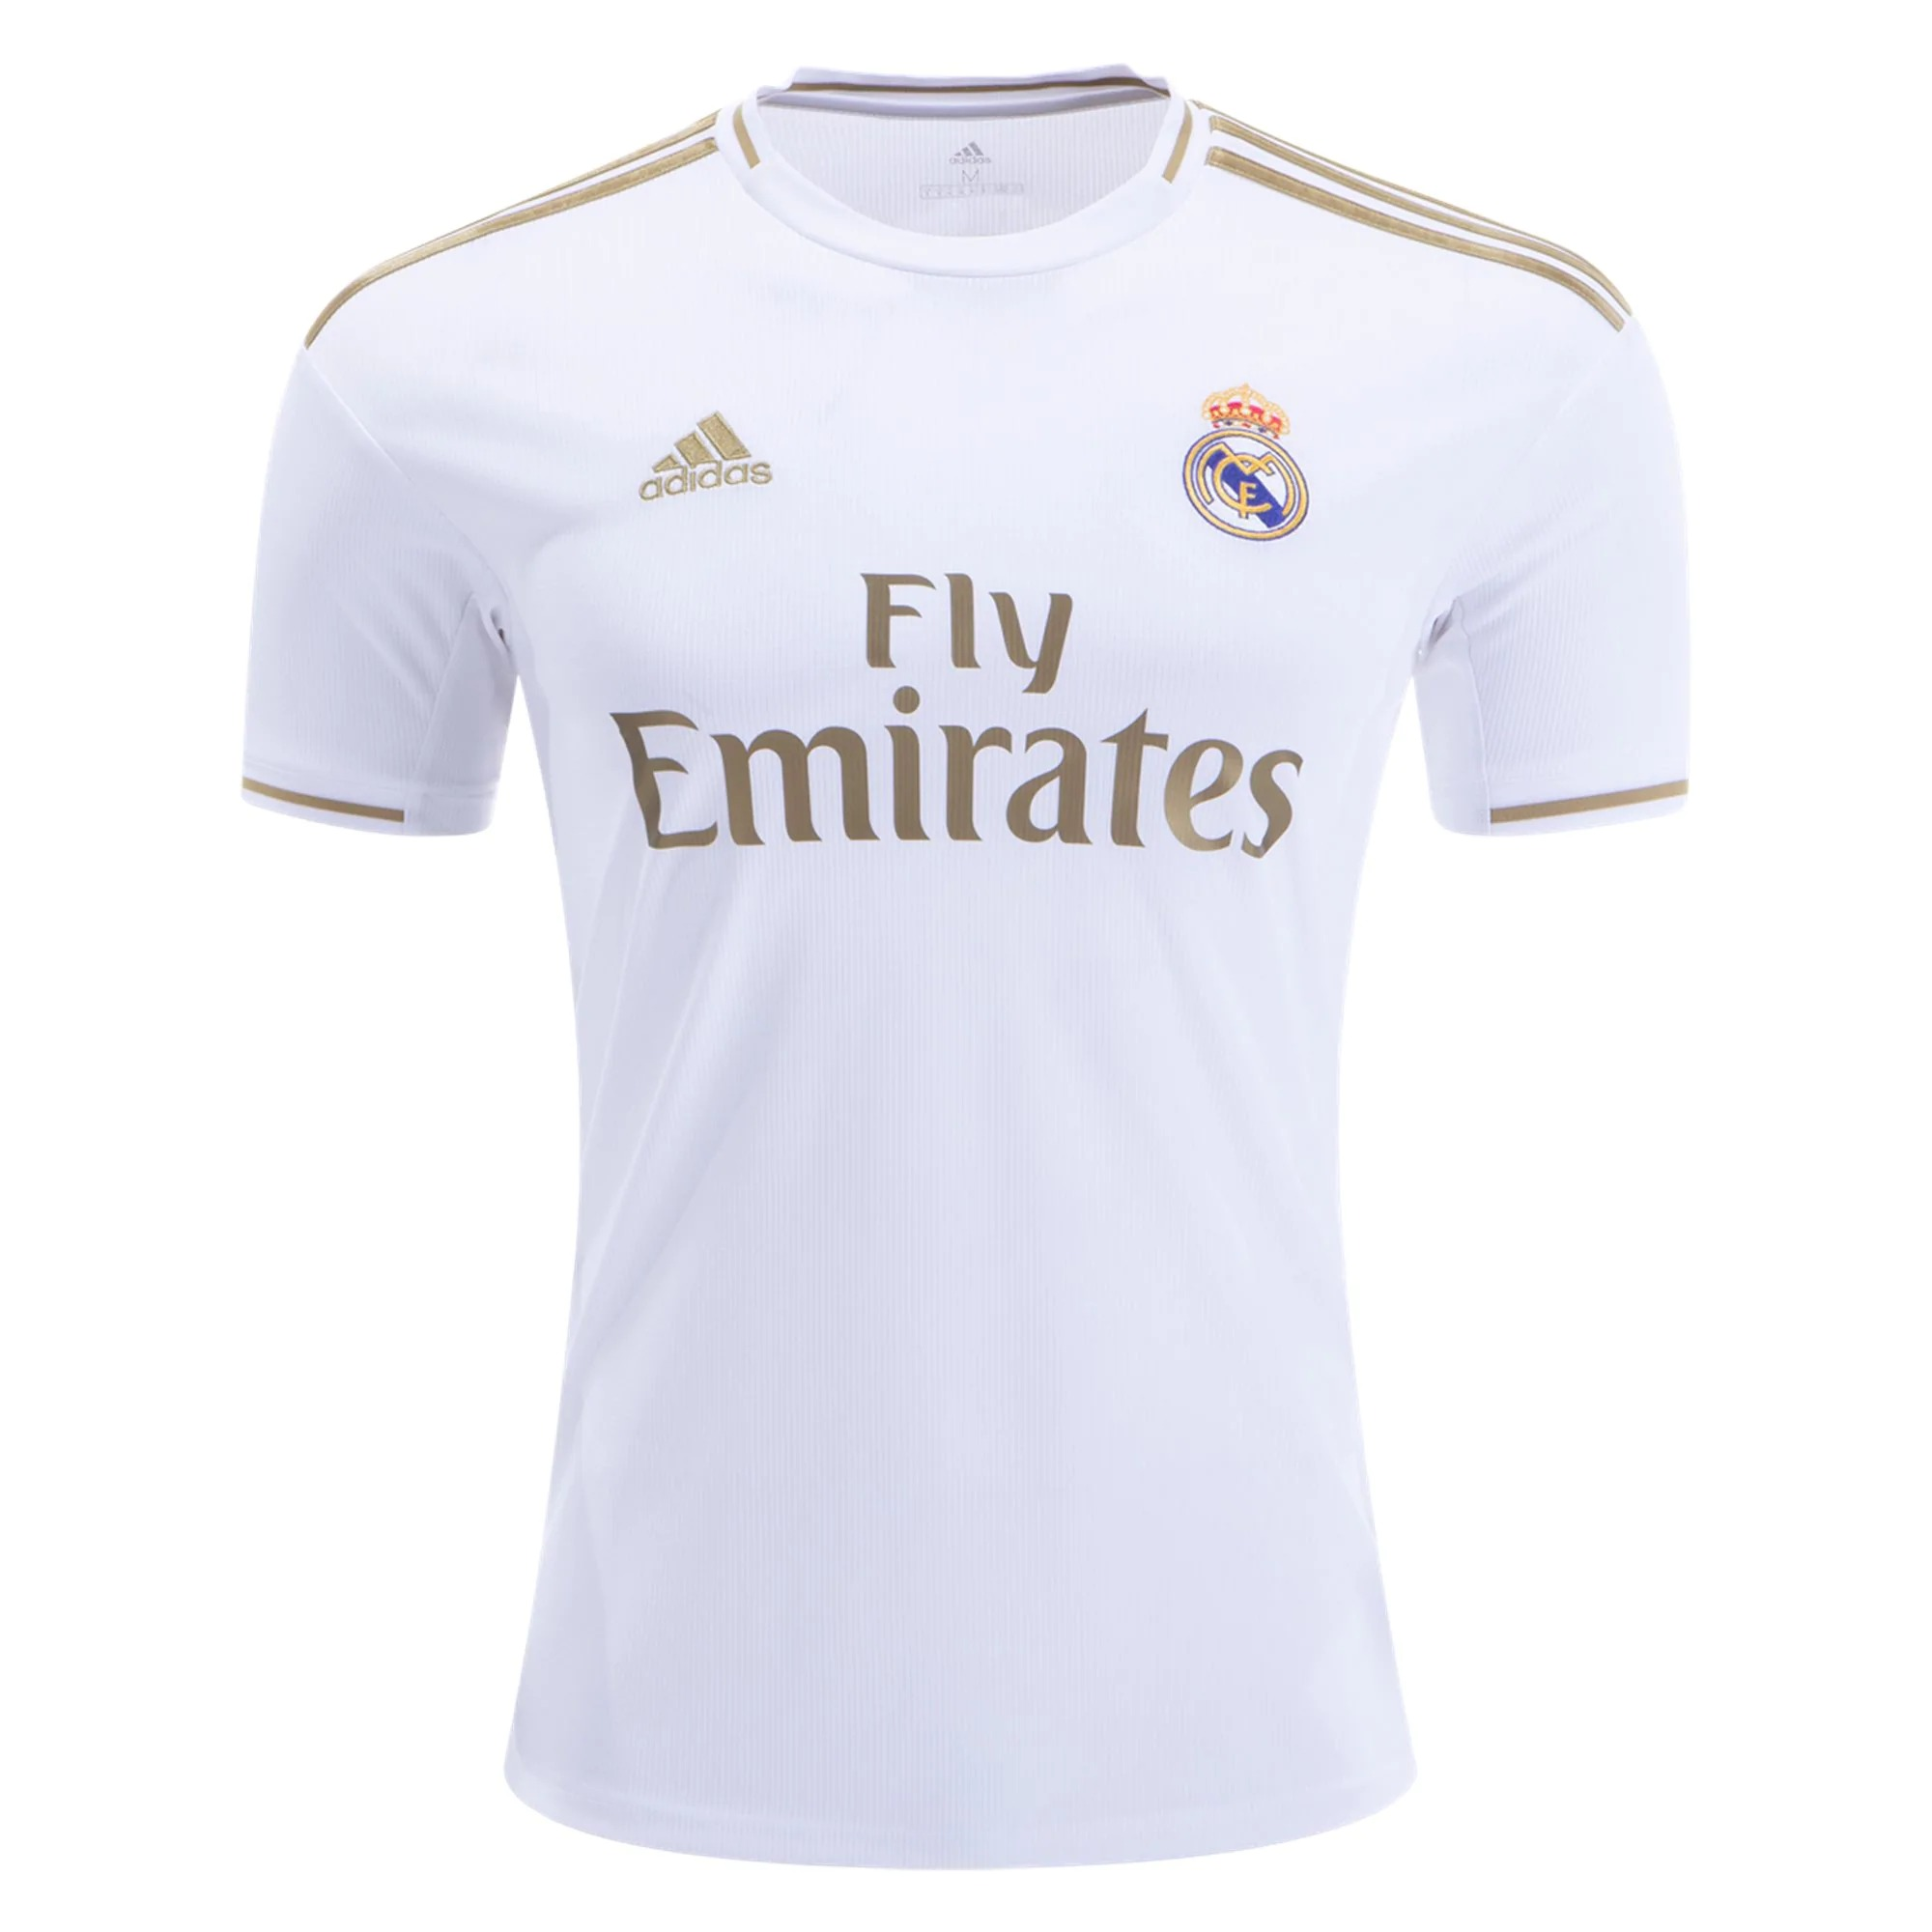 premium selection 01d4c 4349a Marcelo #12 Real Madrid Home Soccer Jersey 2019/20 Men's Soccer Stadium  Shirt Stylish Streetwear from HoHo Jersey Collection